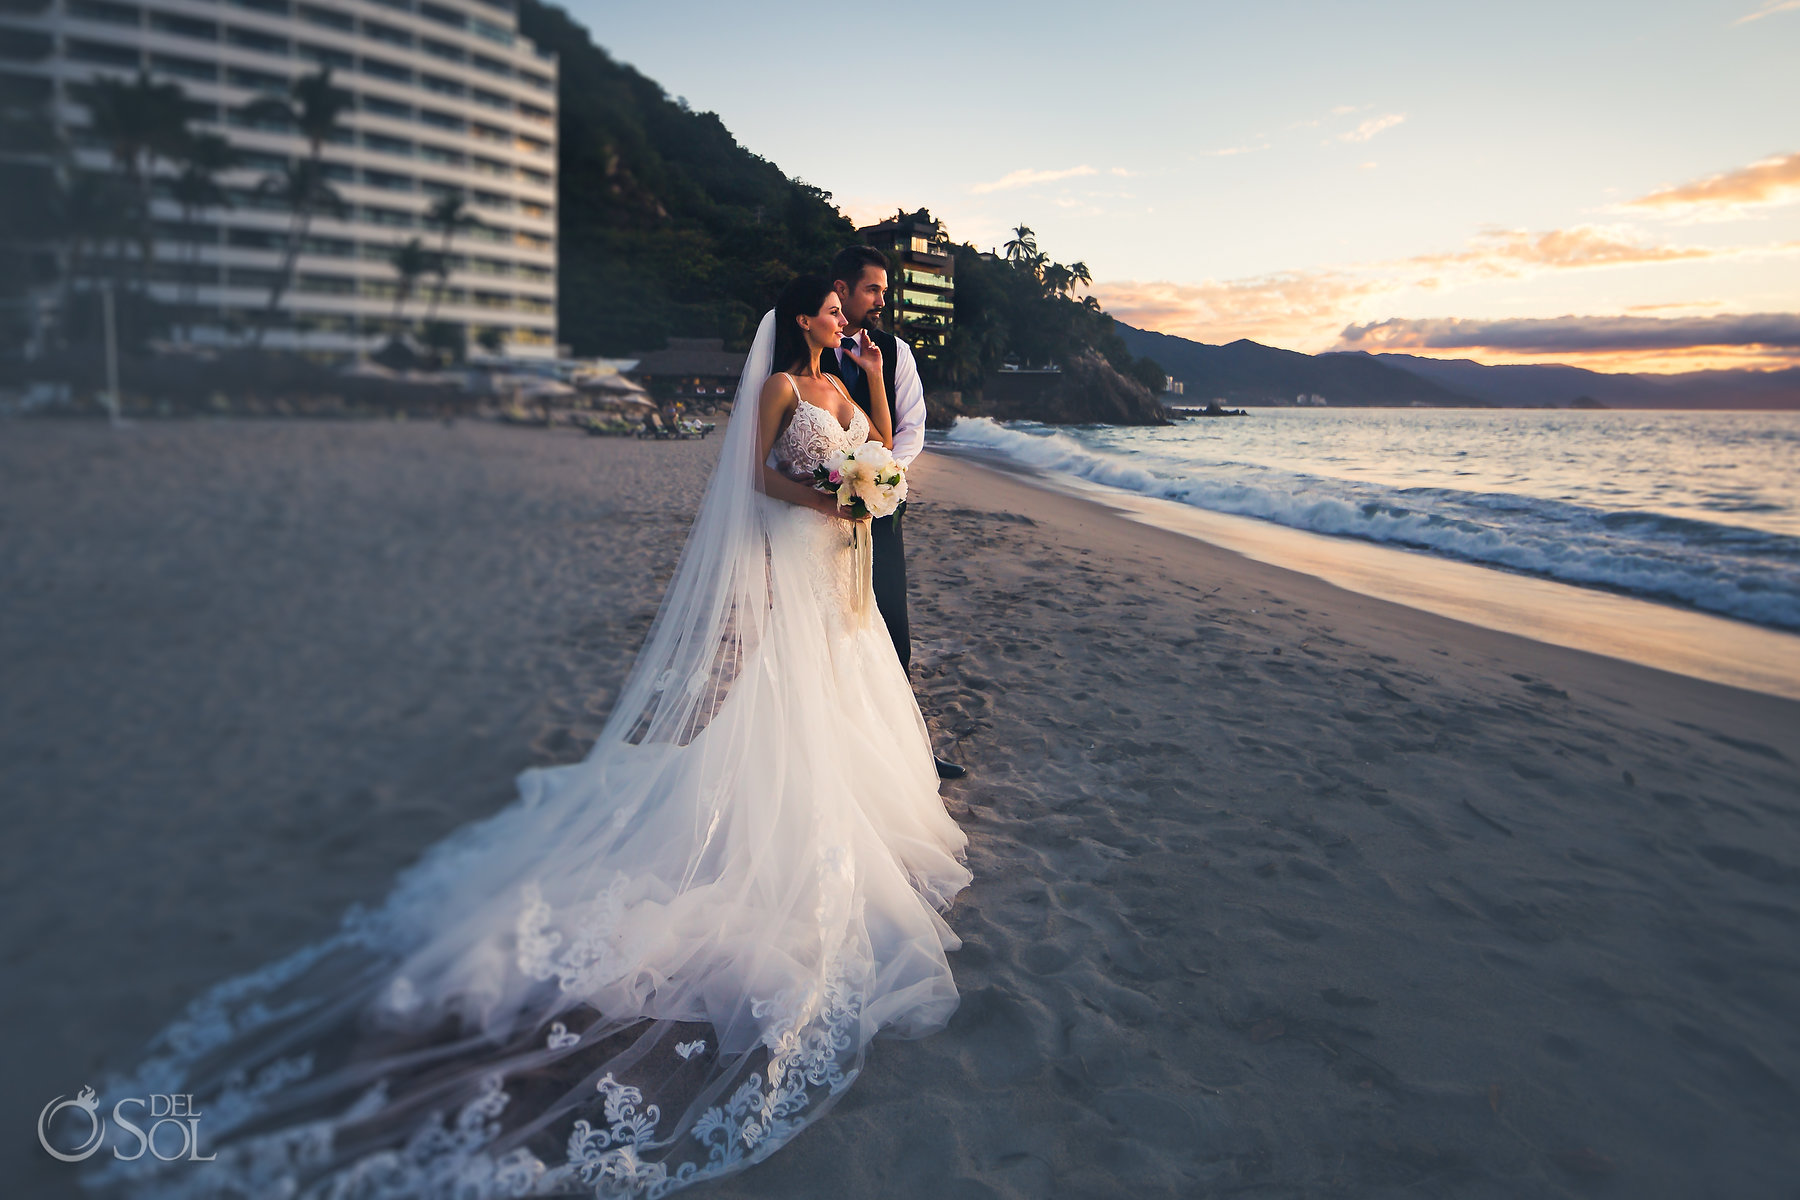 Newlyweds beachfront epic portraits Bridal Long Tulle Embroidered Veil Hyatt Ziva Puerto Vallarta Wedding